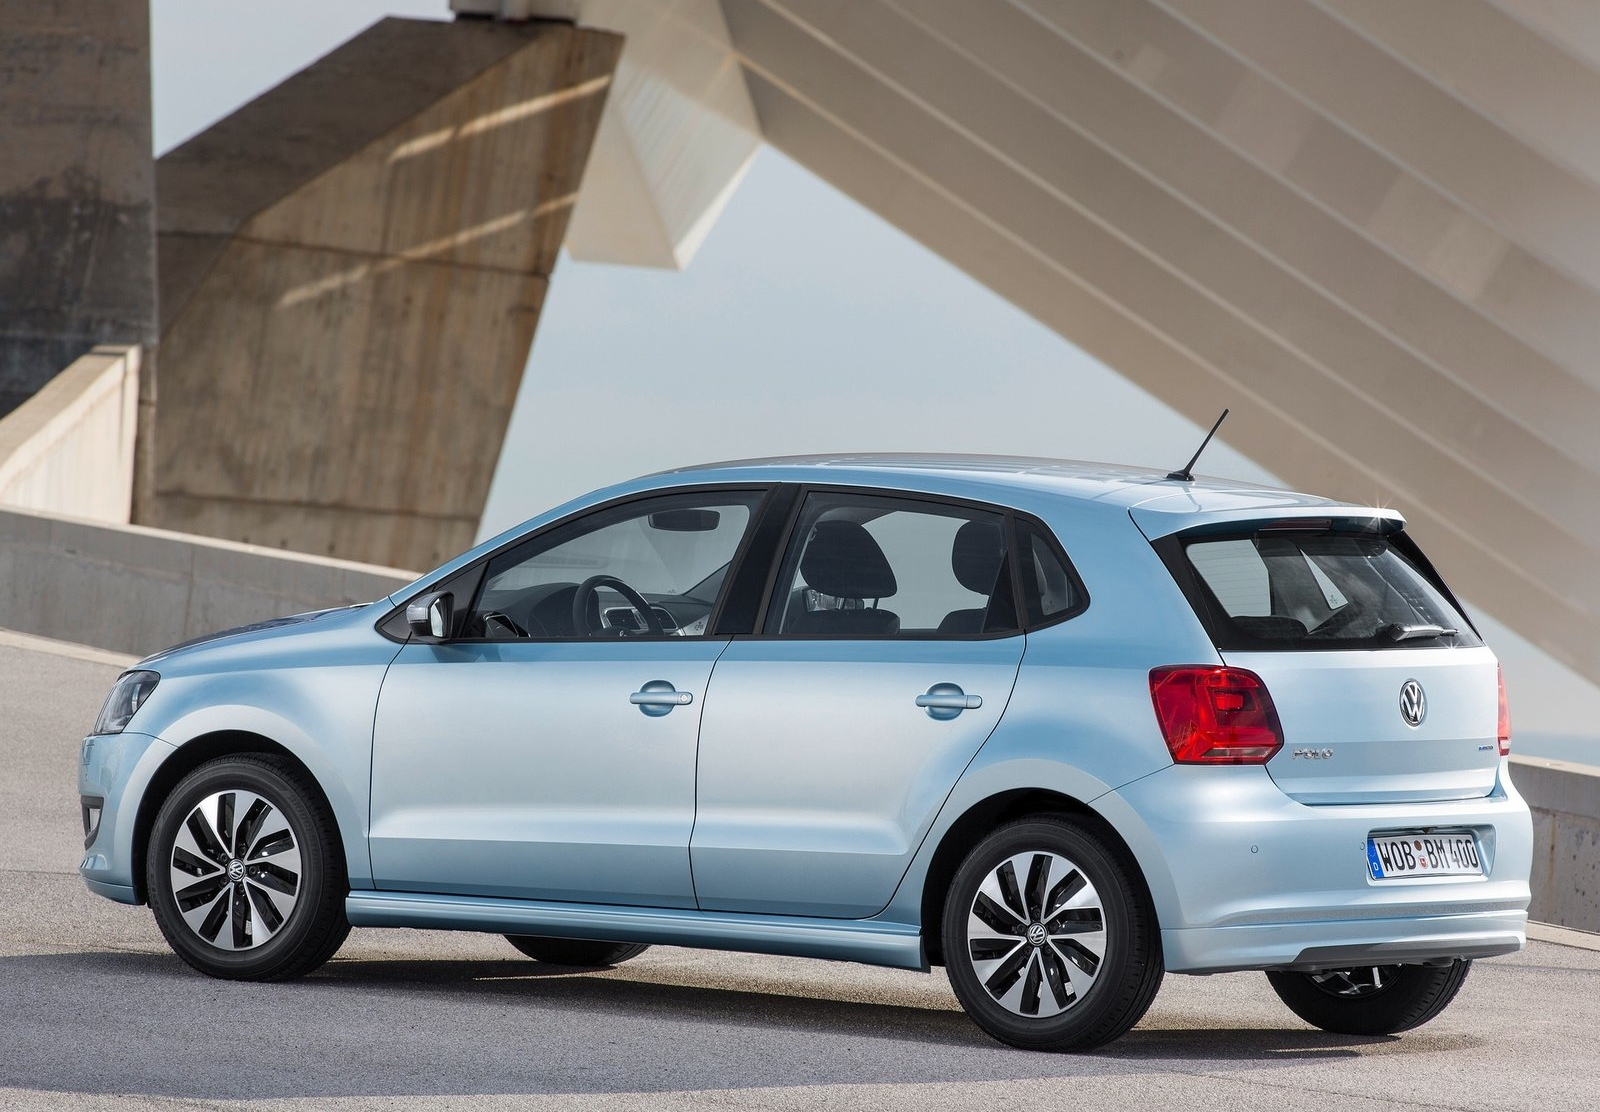 vw-launches-2015-polo-tsi-bluemotion-with-1-liter-turbo-engine_2